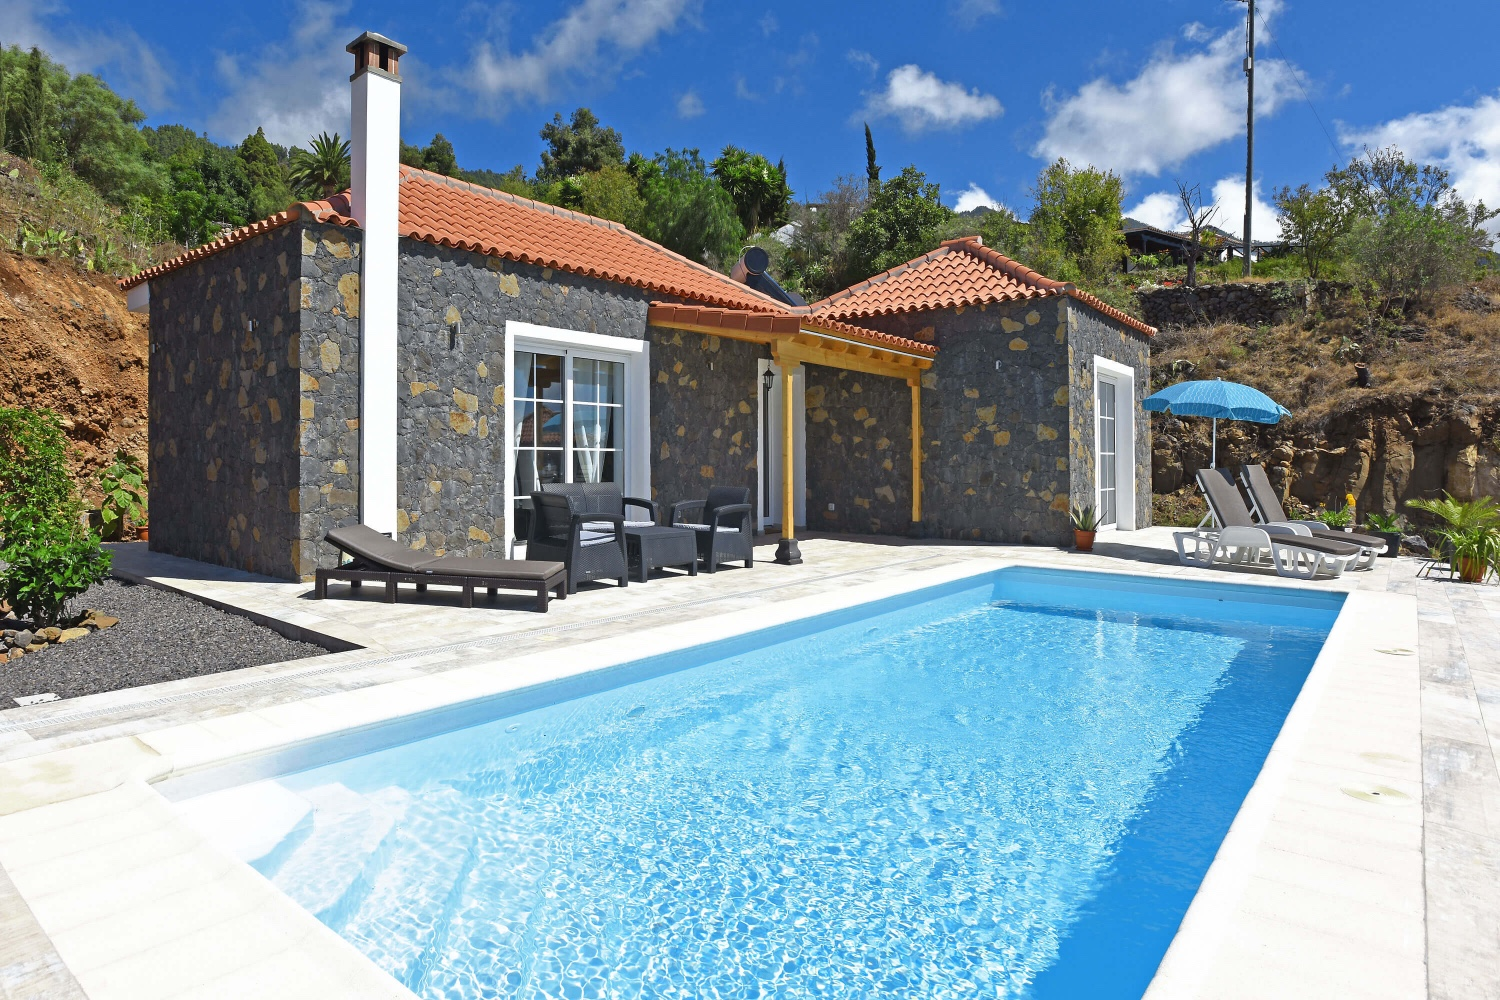 Beautiful stone house of recent construction with modern interior, fireplace, private pool and barbecue on the terrace to enjoy the wonderful views